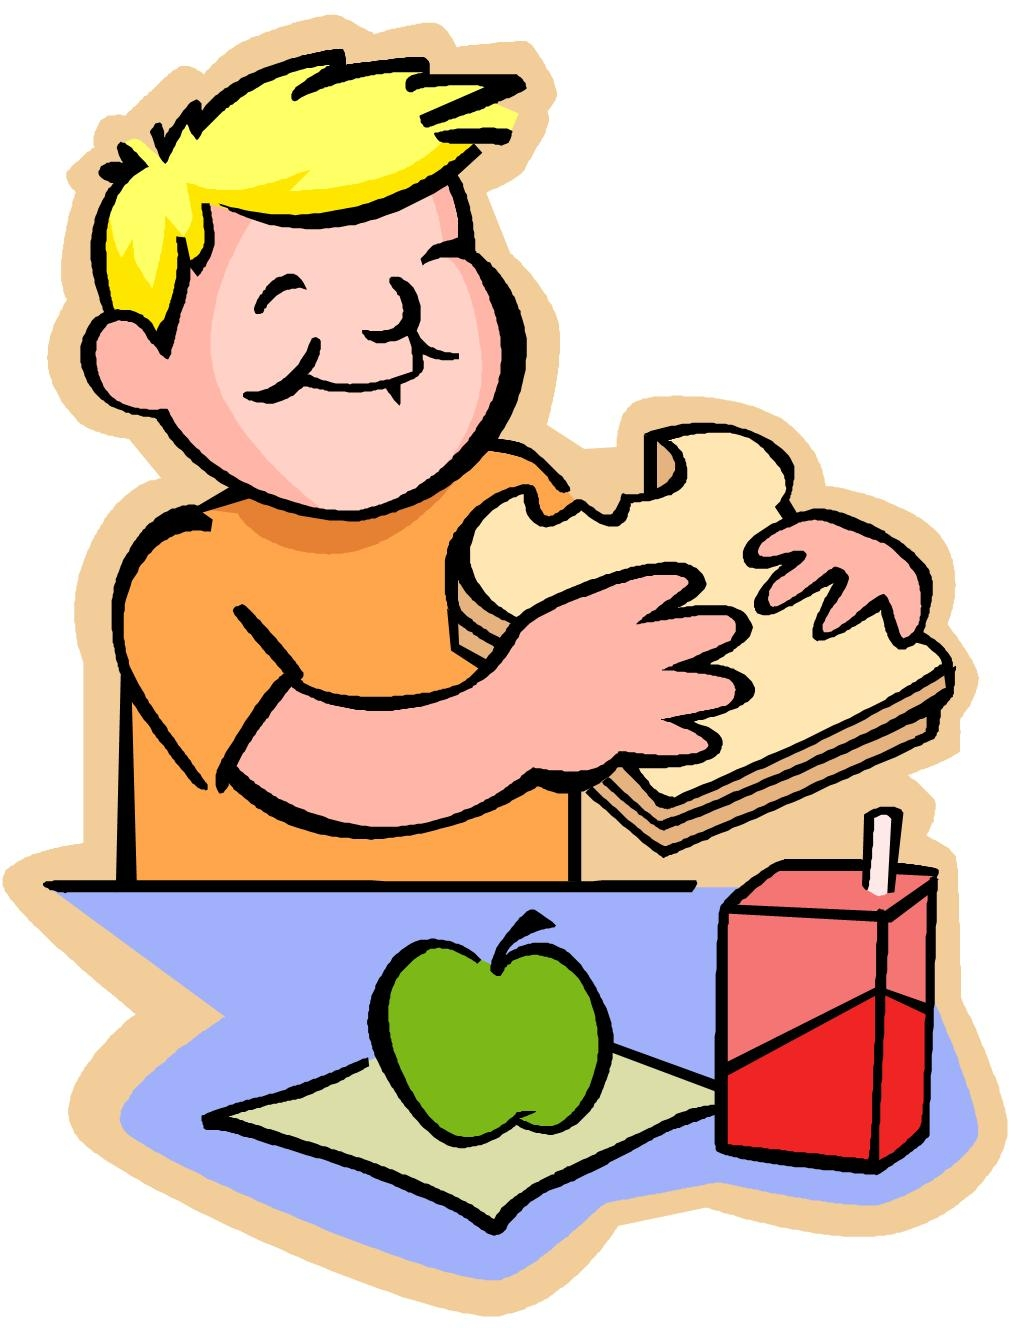 Eating topplabs org awesome. Breakfast clipart family